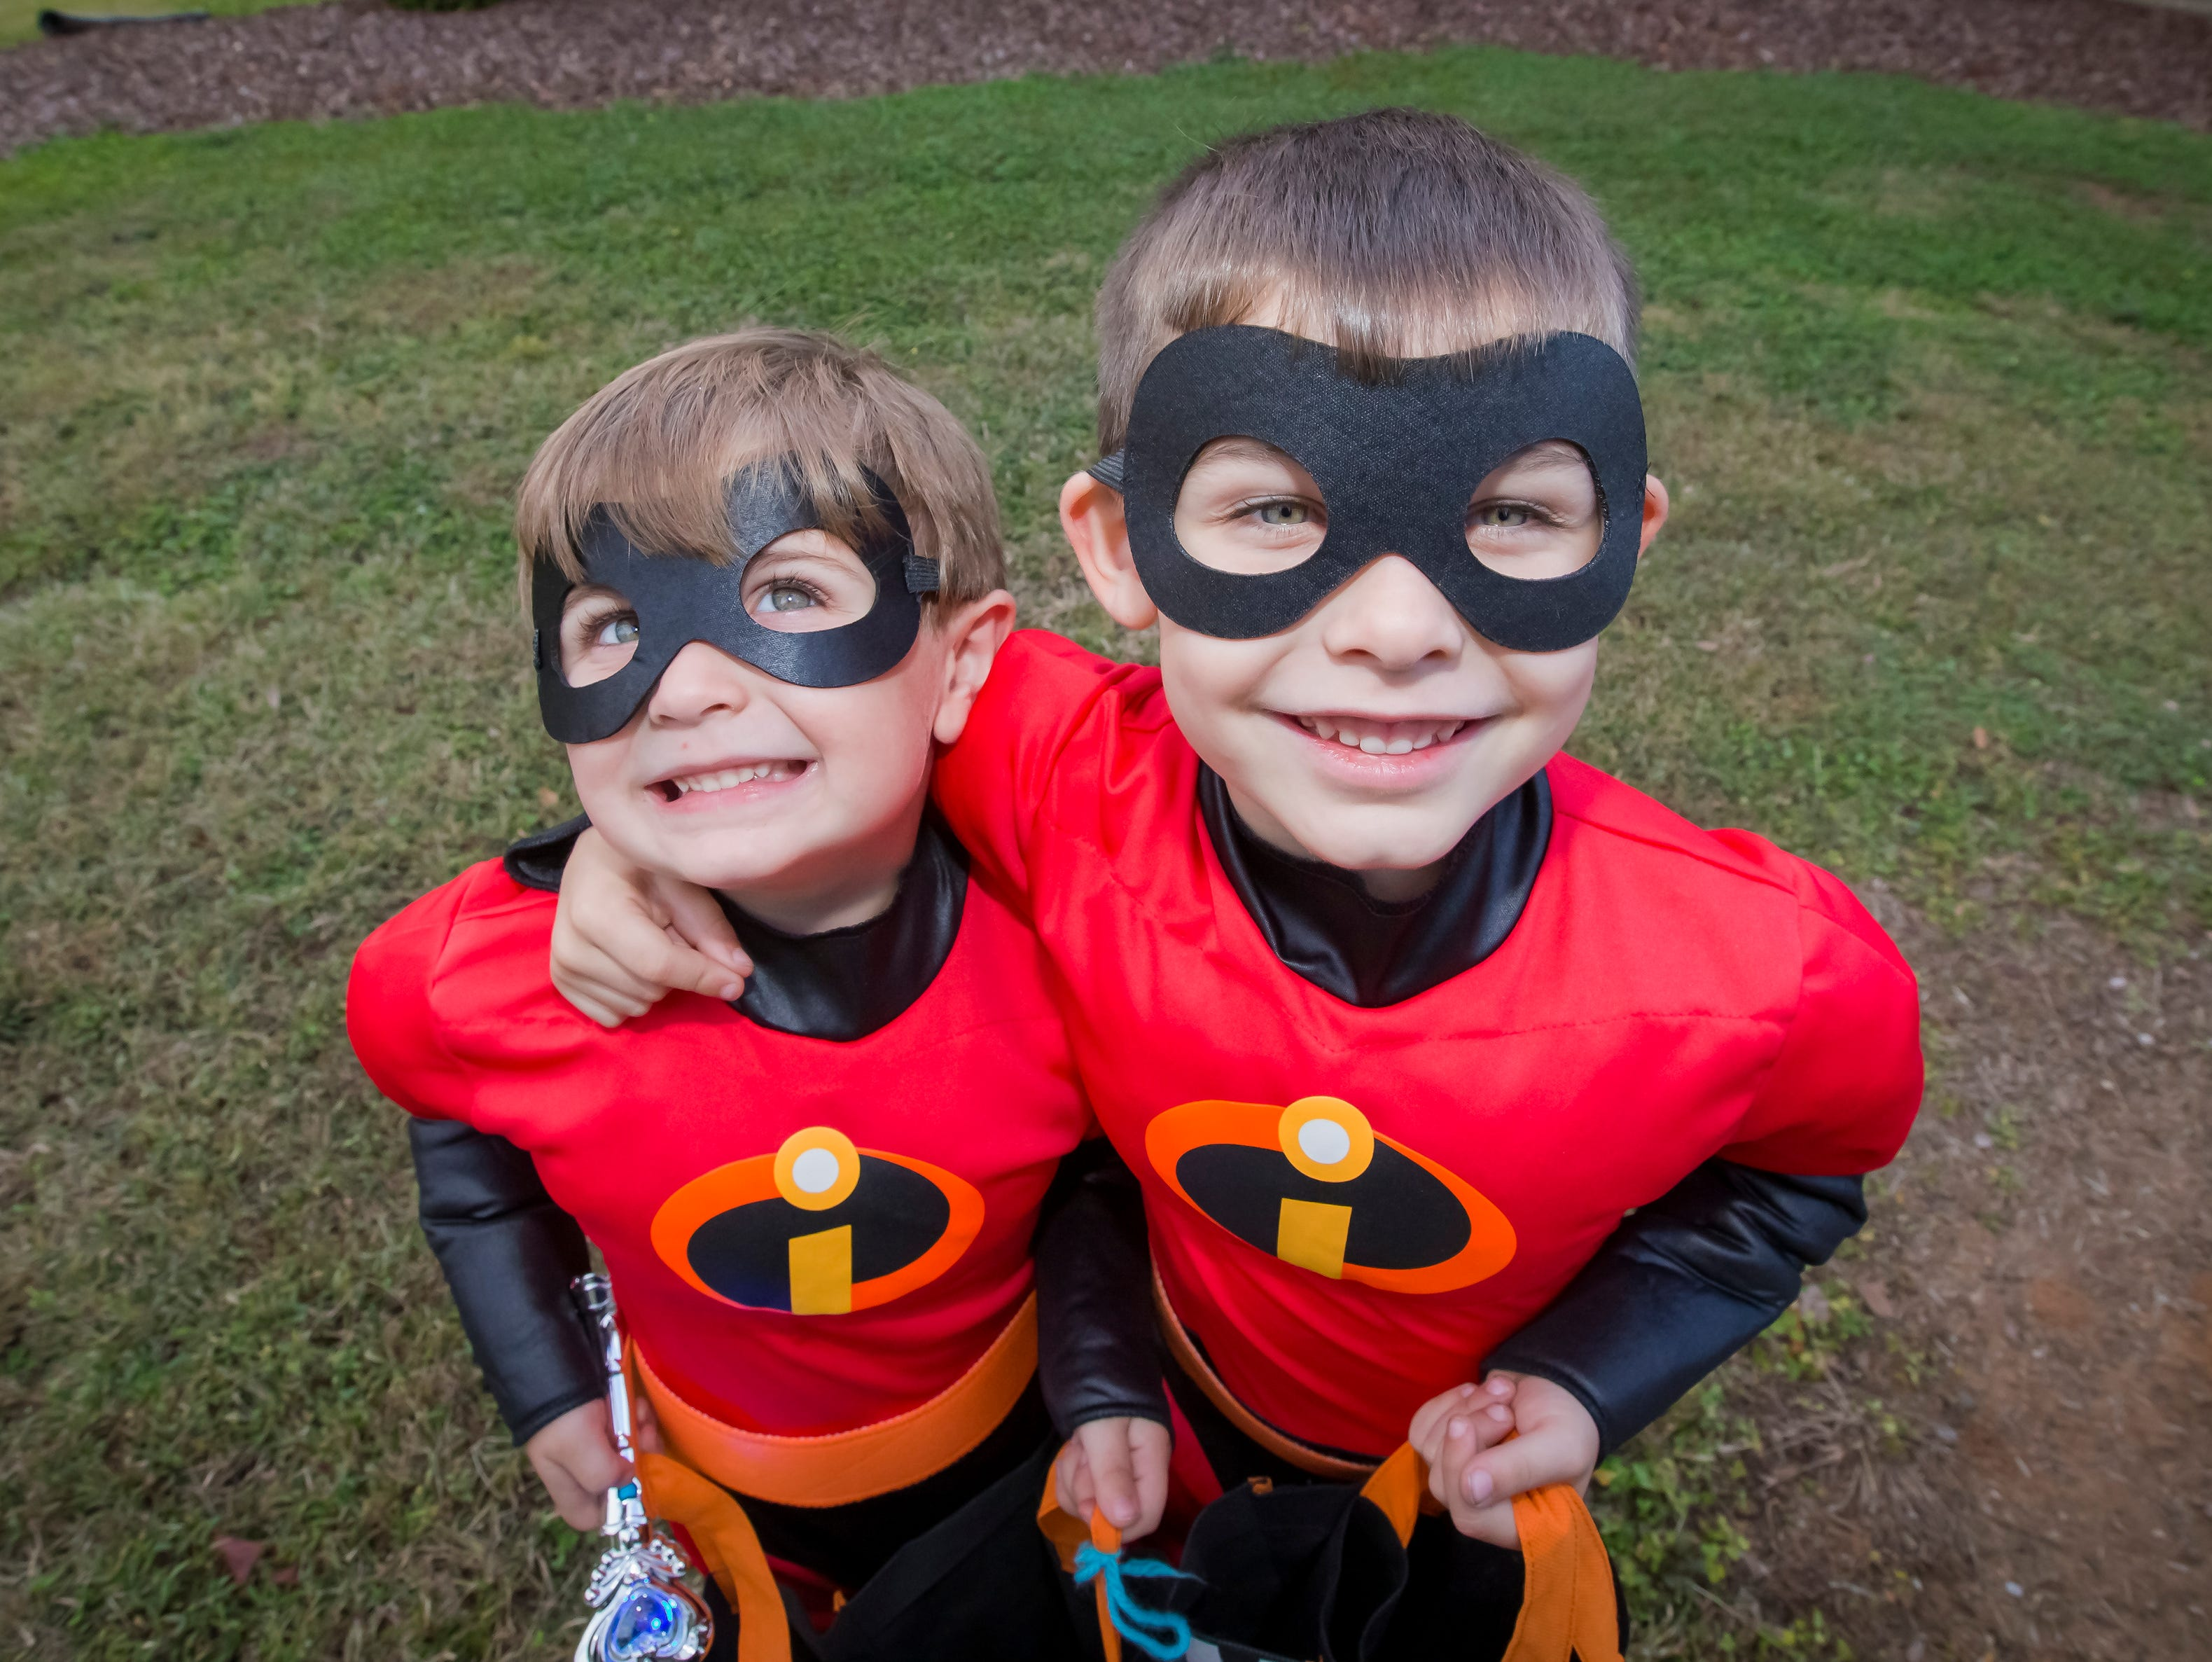 Bramlett and Huck Weaver  at the Greek Row Trick or Treat at MTSU on Tuesday, Oct. 30, 2018.